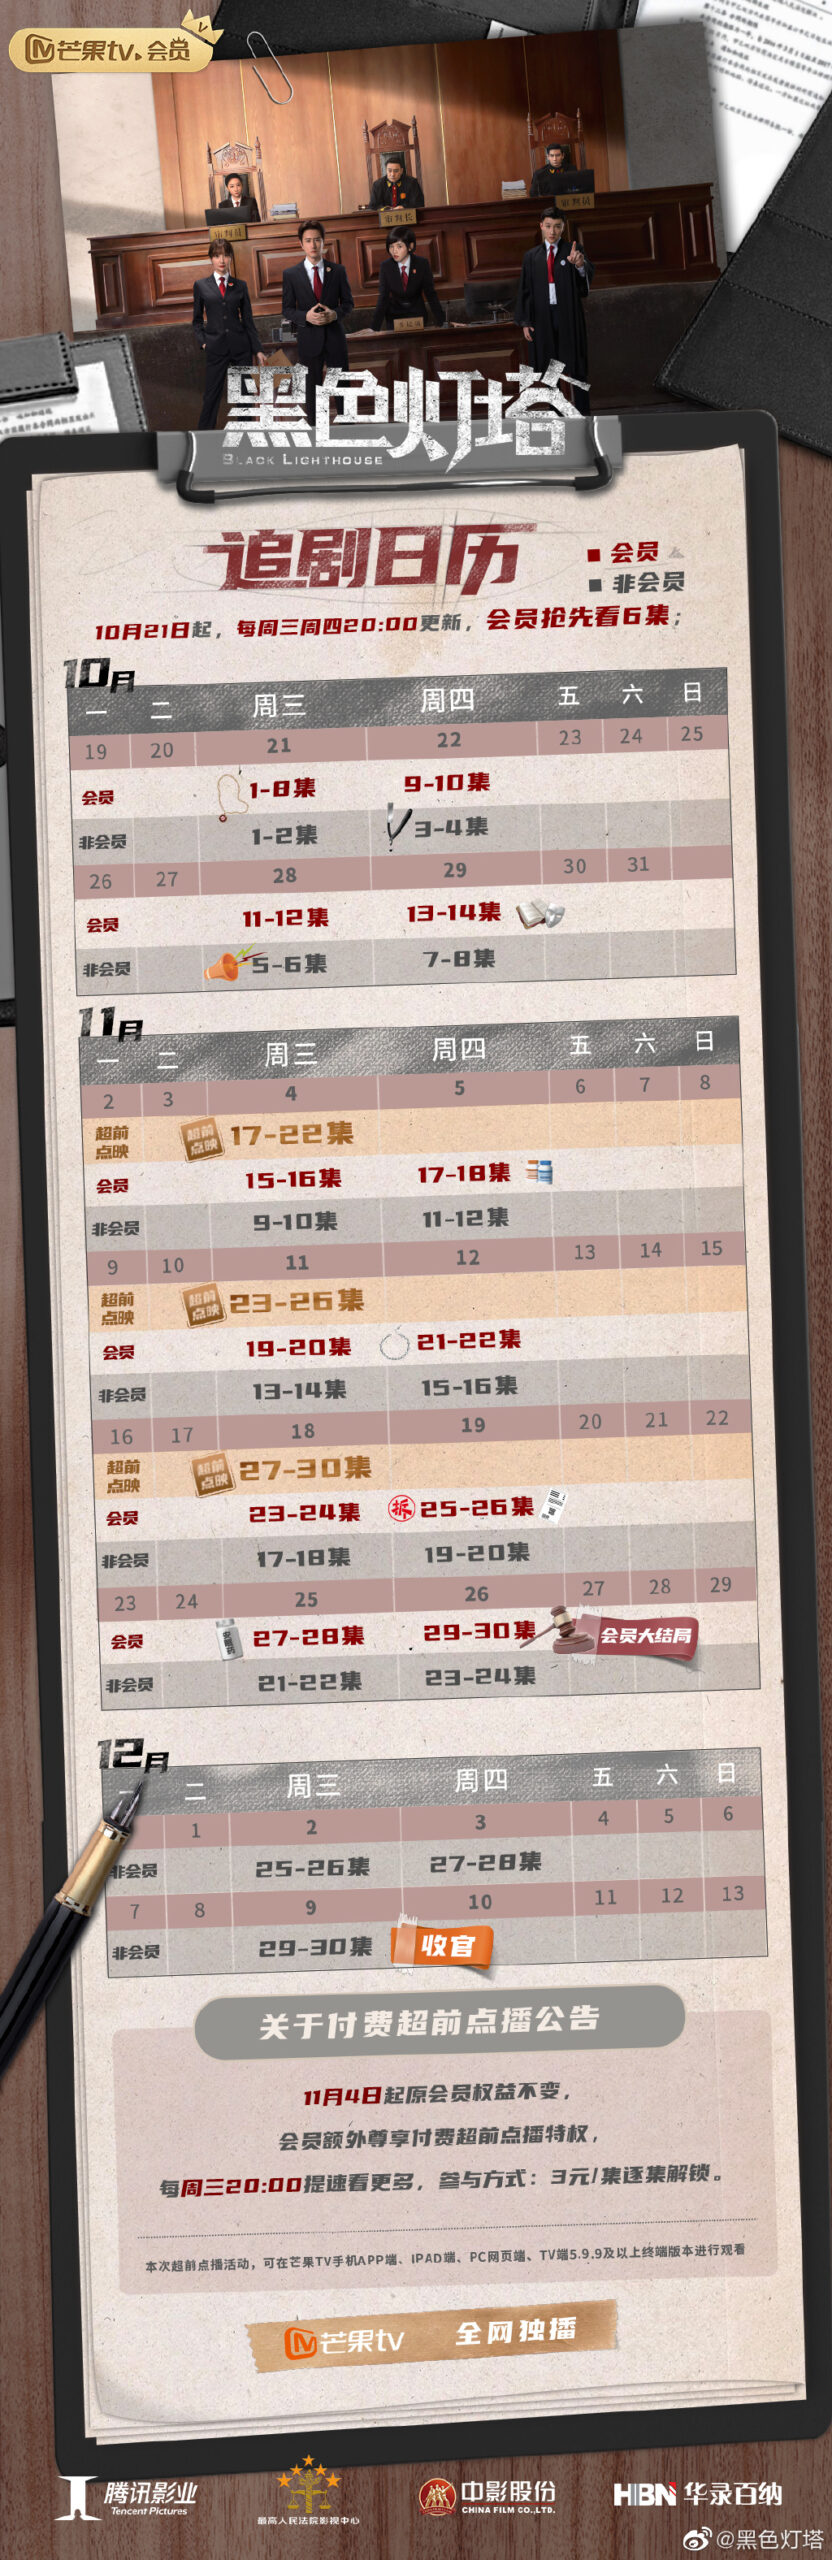 Black Lighthouse Chinese Drama Airing Calendar